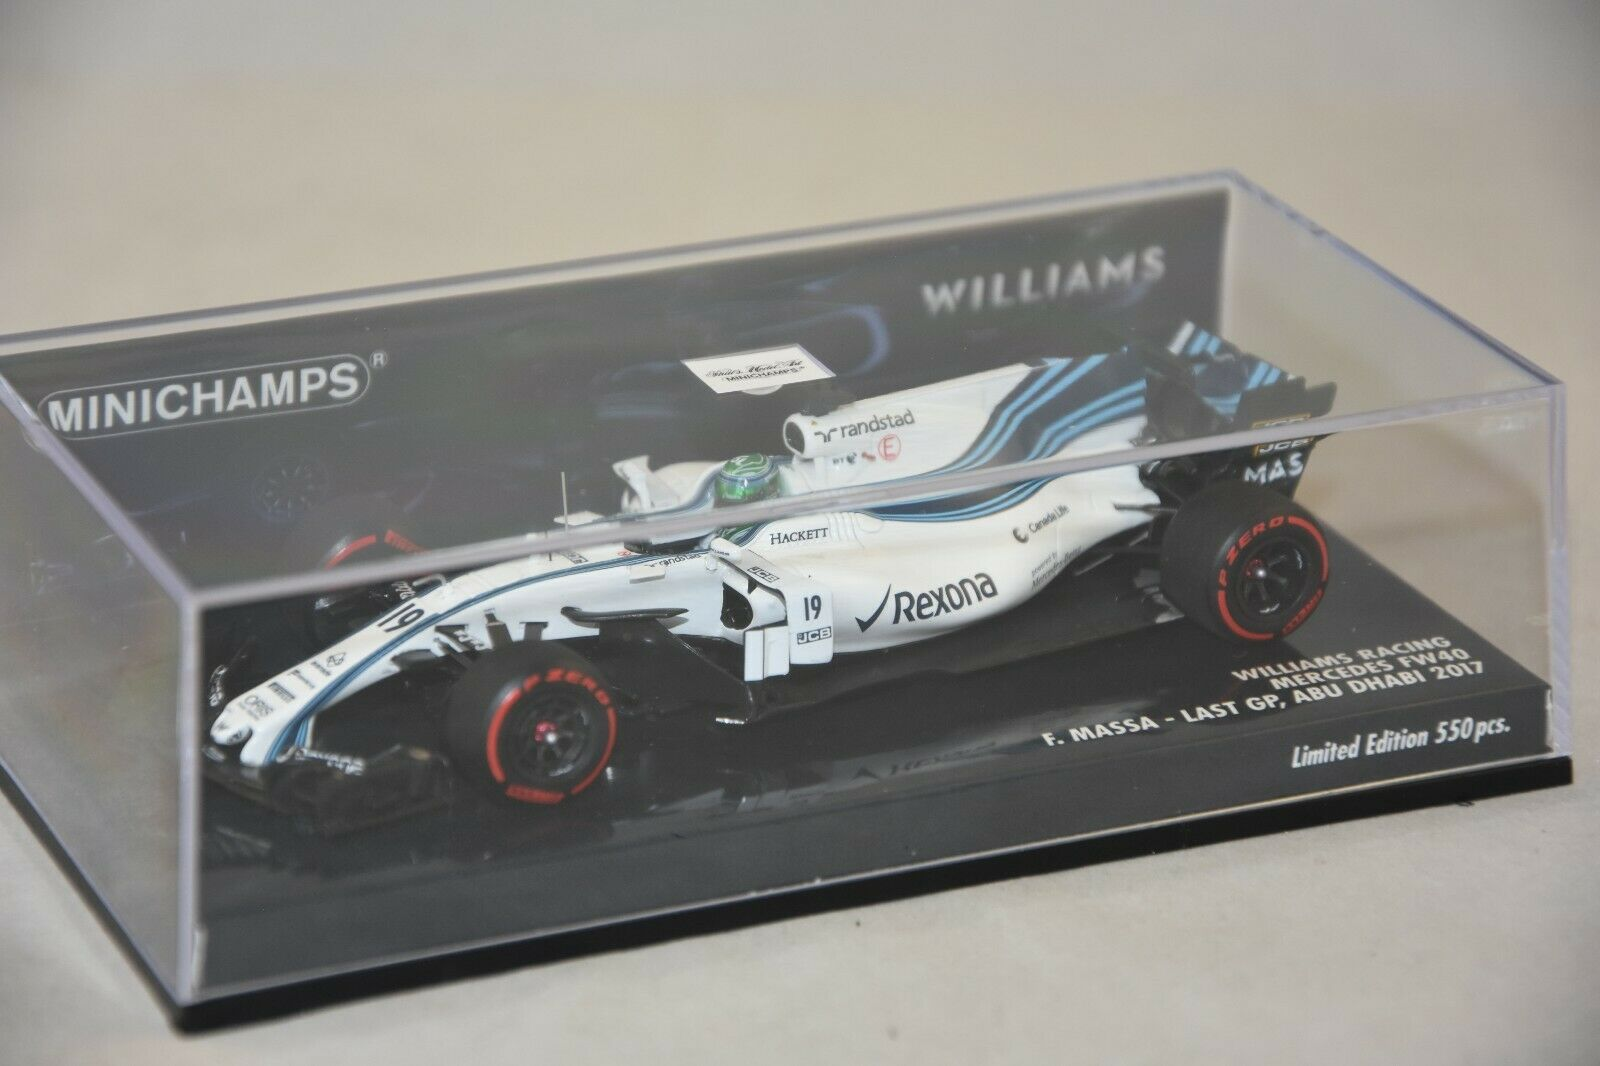 Minichamps-williams martini racing mercedes fw40 – felipe massa – last gp 1 43